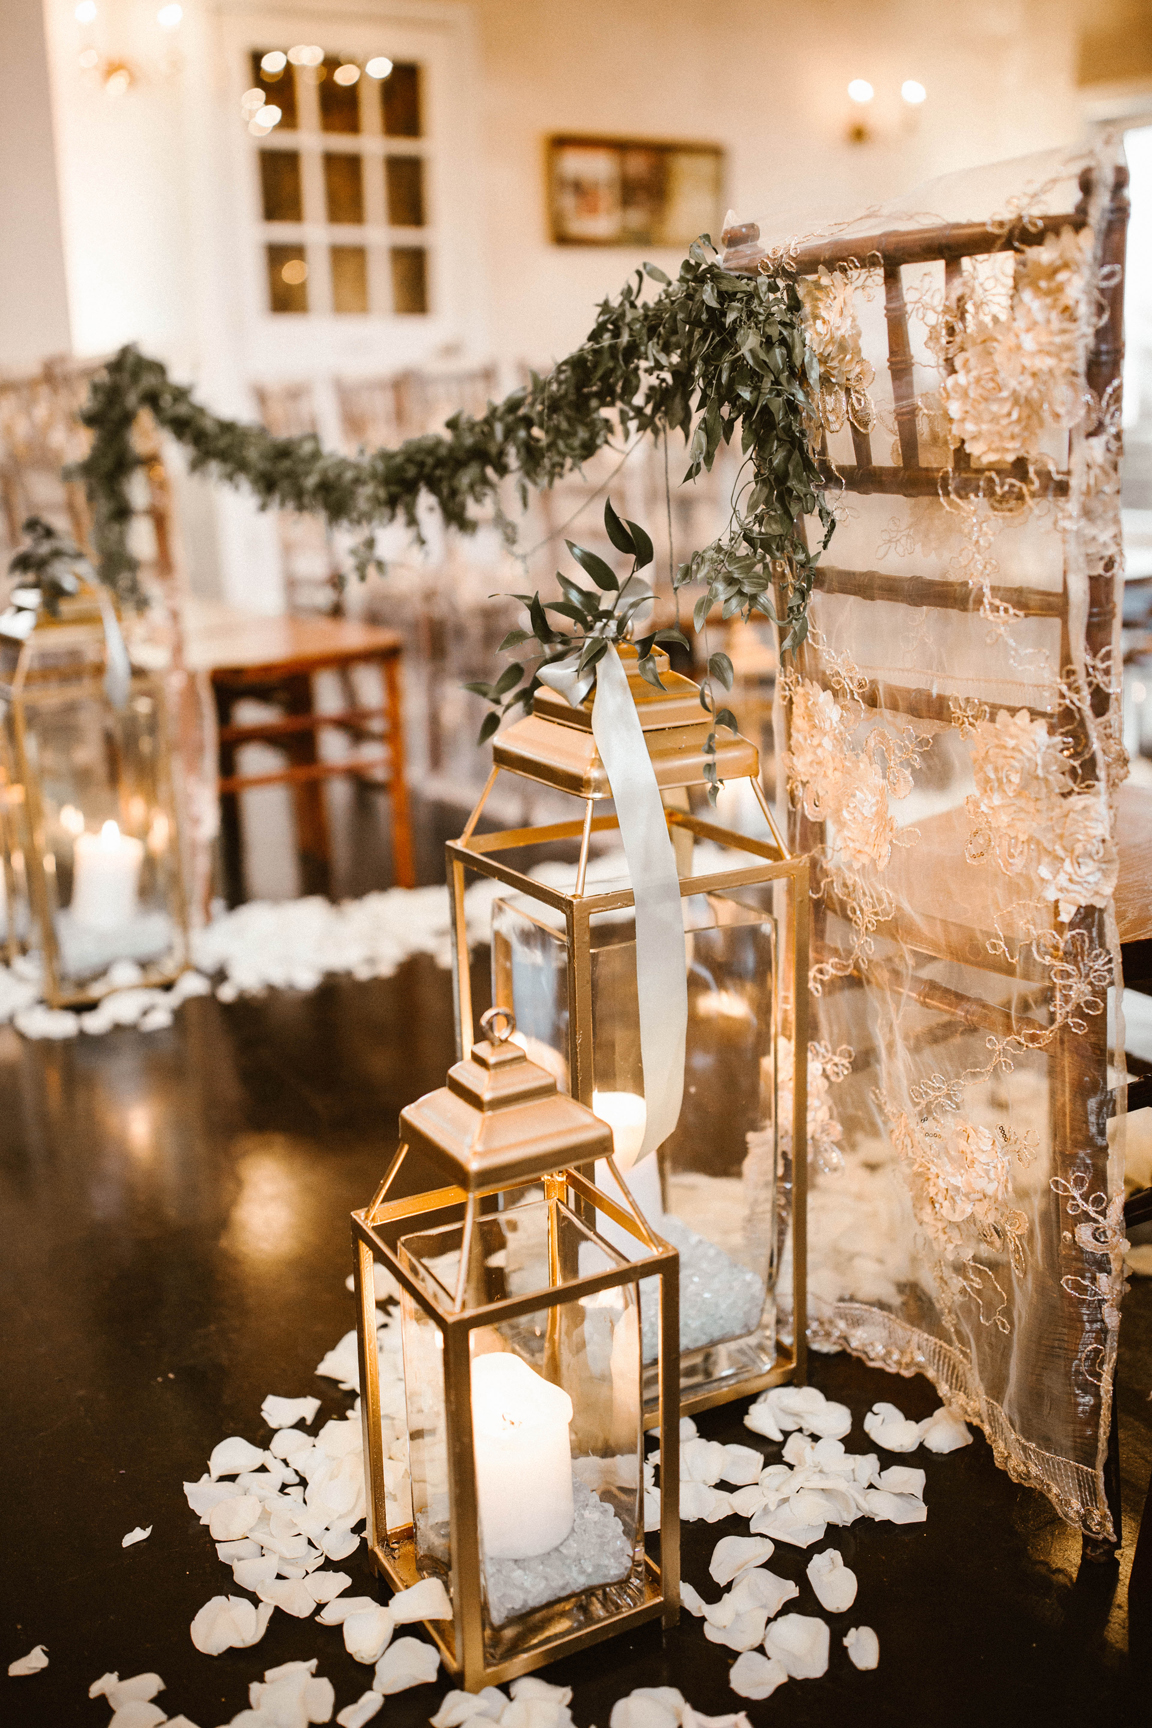 DeLille+Cellars_The+Chateau_Woodinville_2017_Weddings+In+Woodinville103.jpg